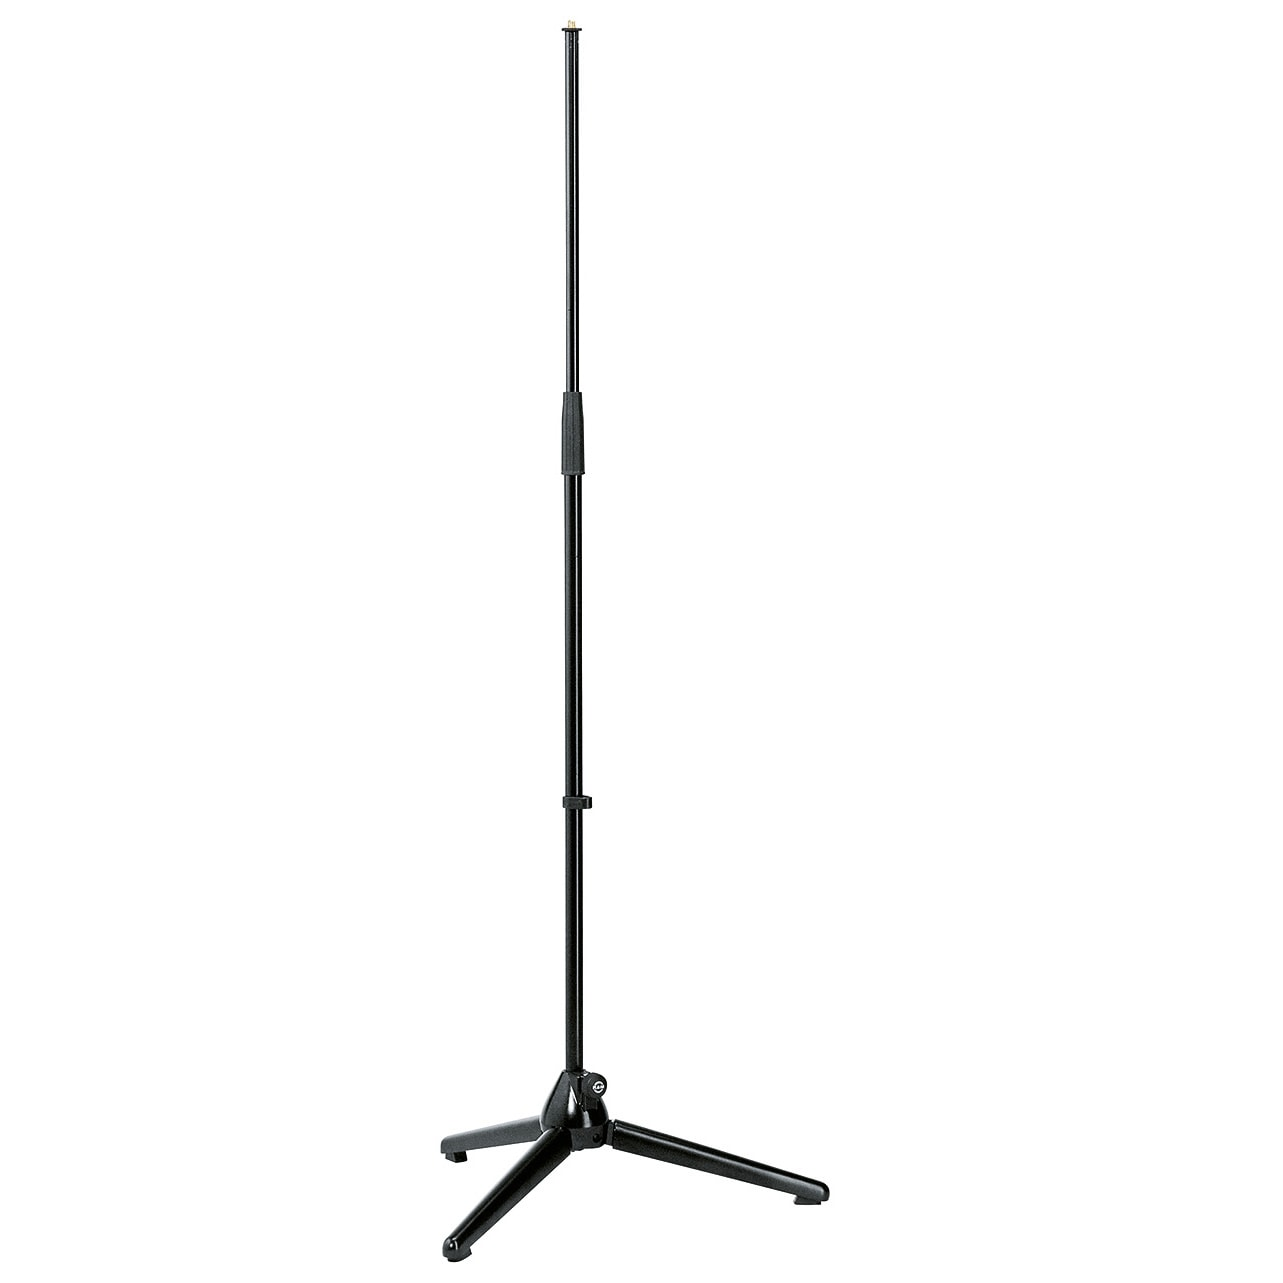 KM200 - Microphone stand